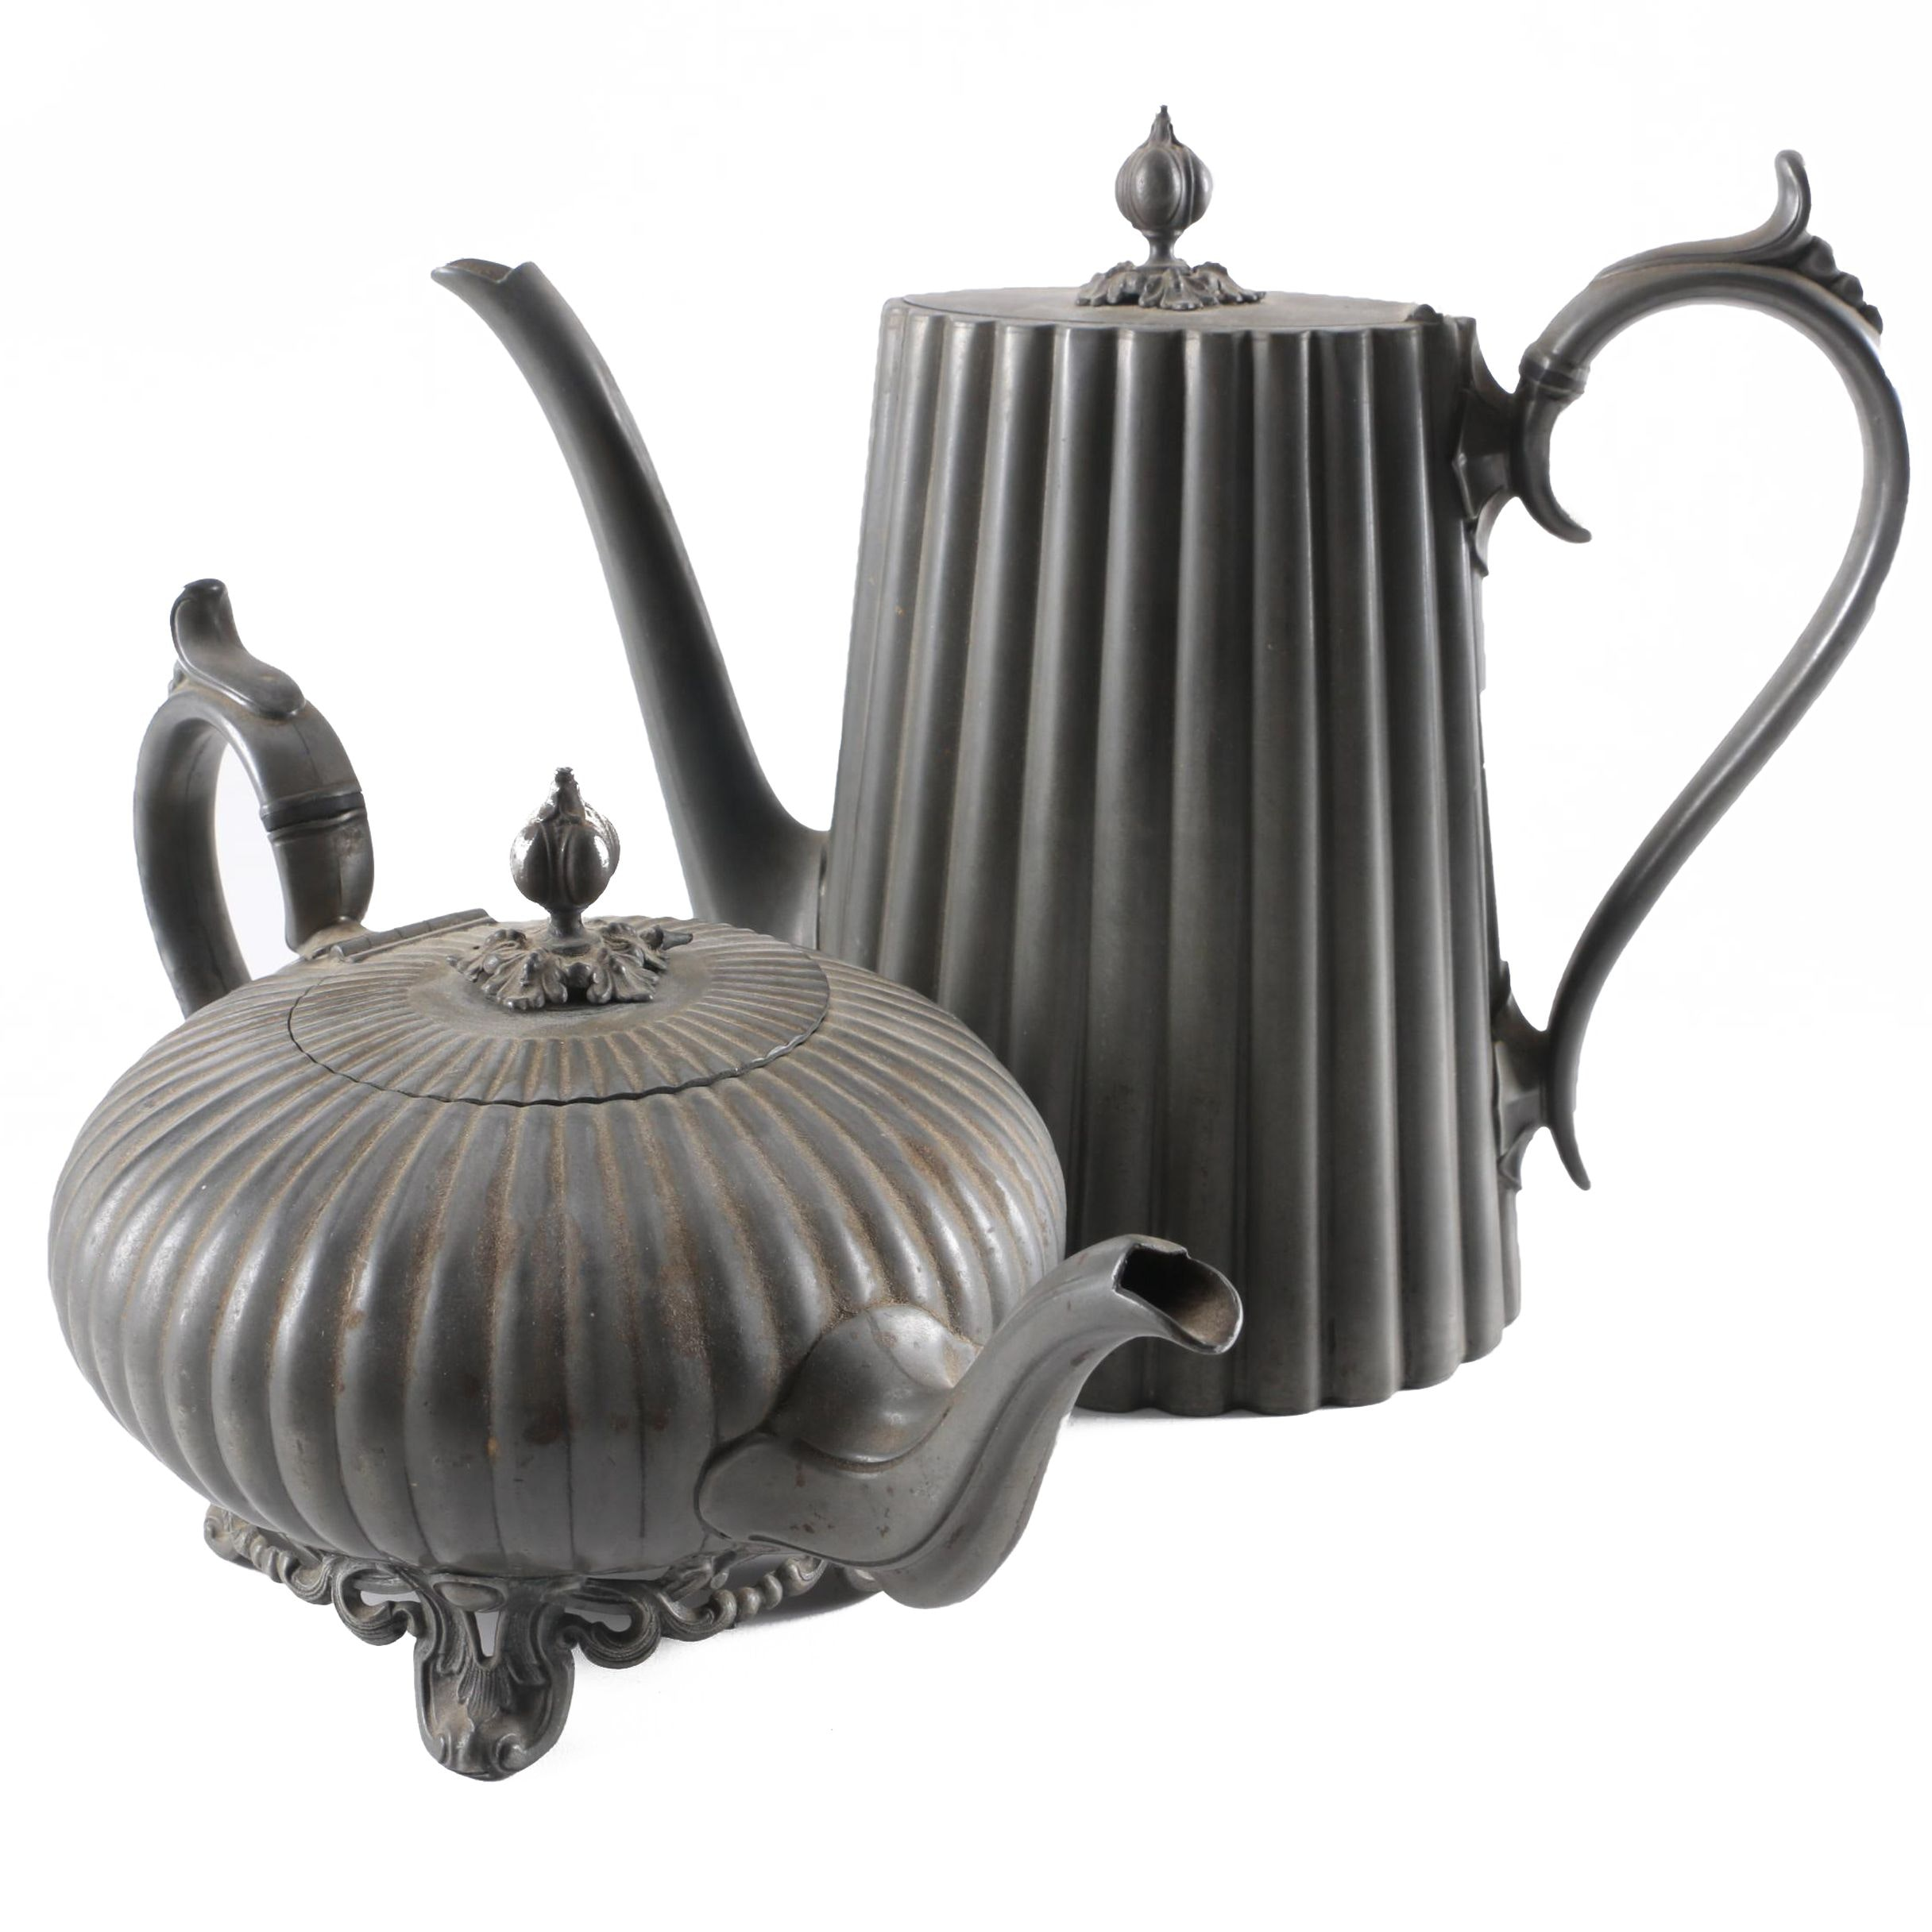 Philip Ashberry & Sons Silver-Plated Teapot and Coffee Pot